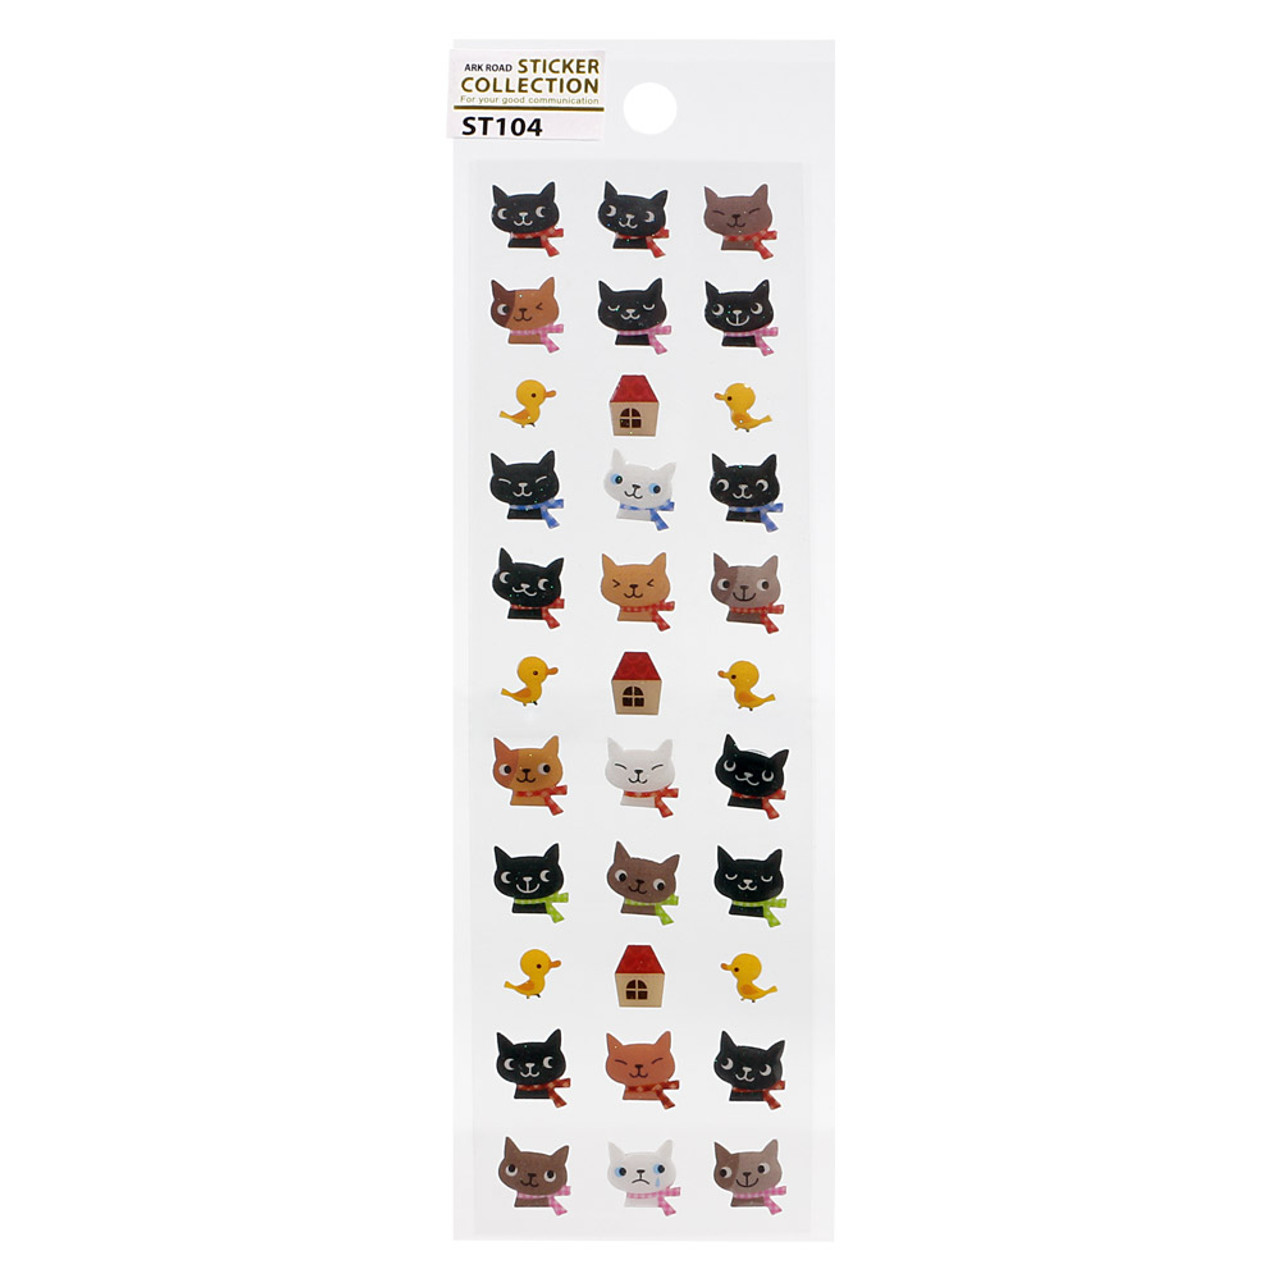 Japan Ark Road Sticker Collection Cute Cats Birds & House Sticker ST-104 ( Front View )